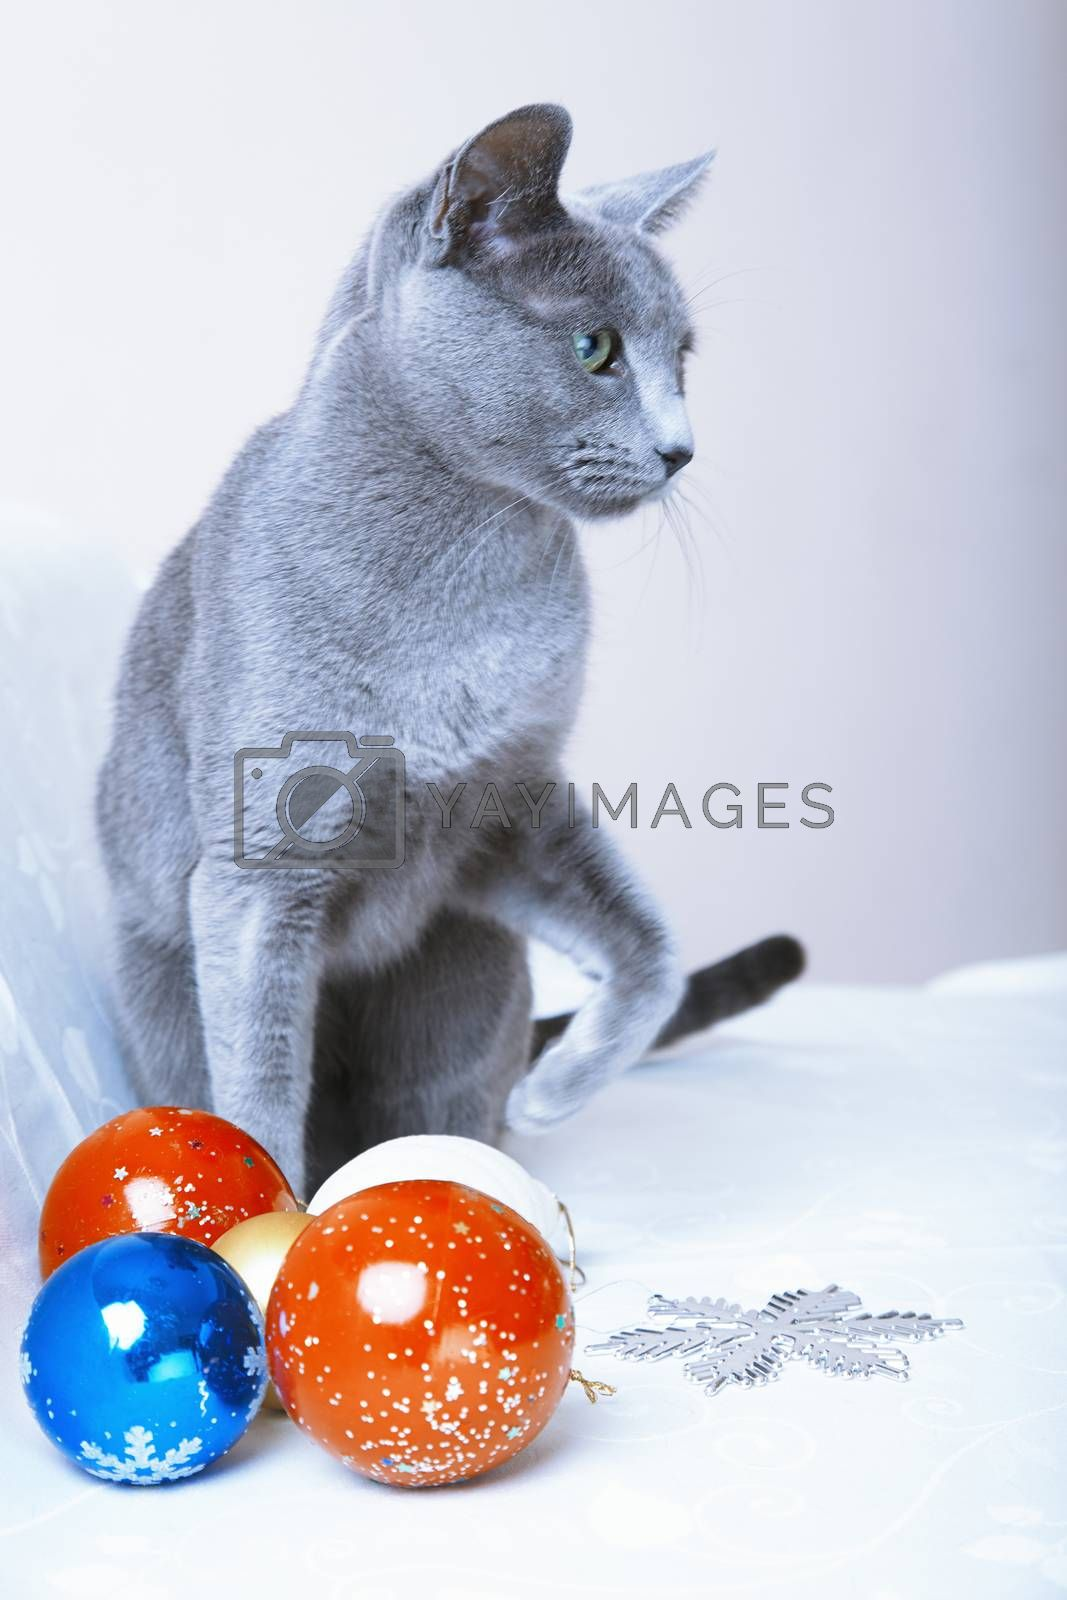 Cat sitting at the Christmas balls and decoration